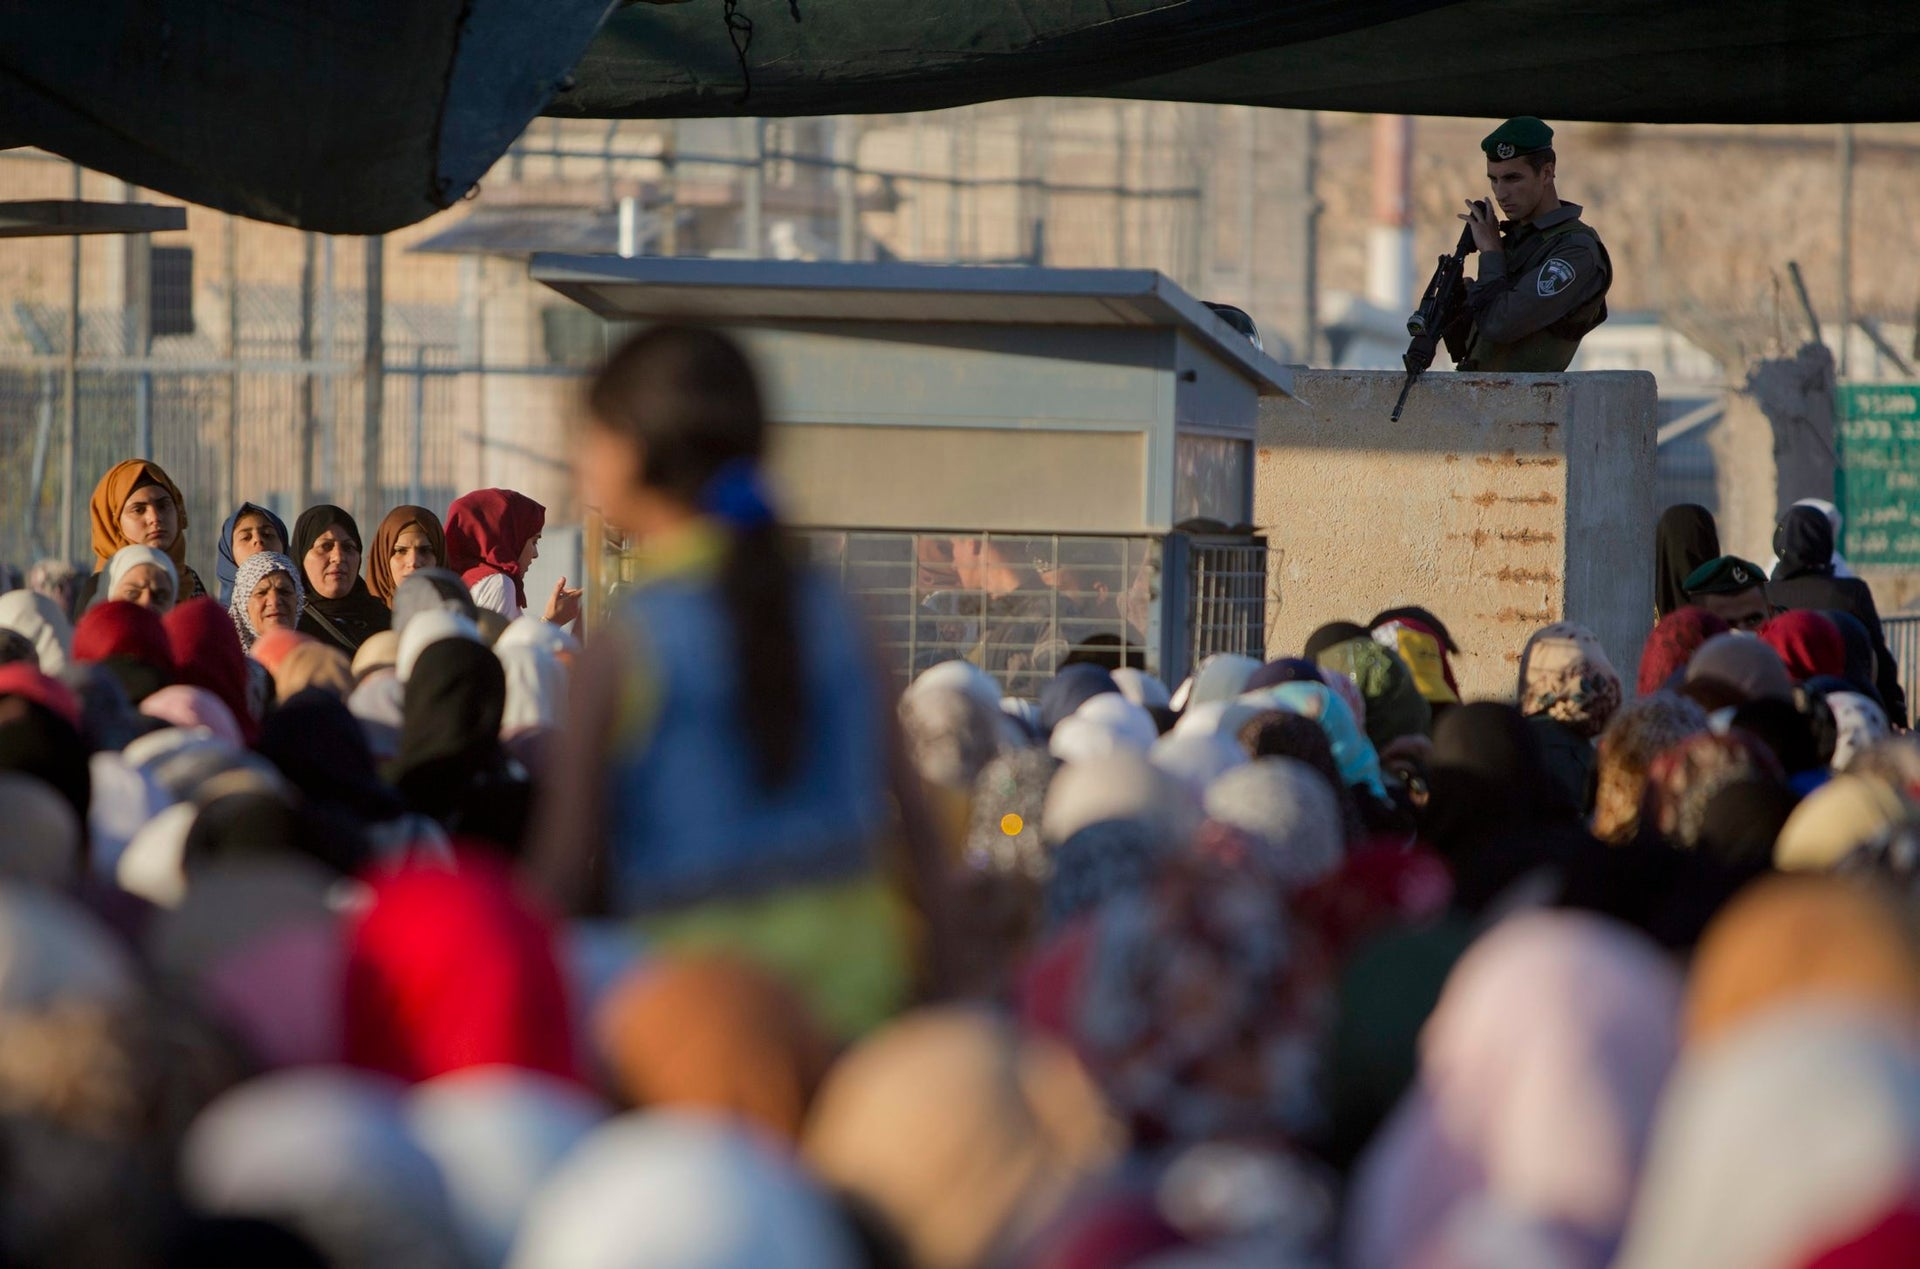 An Israeli border police officer stands as Palestinian women wait to cross the Qalandiyah checkpoint between the West Bank city of Ramallah and Jerusalem on their way to pray at Al-Aqsa Mosque during Ramadan, Friday, June 17, 2015.